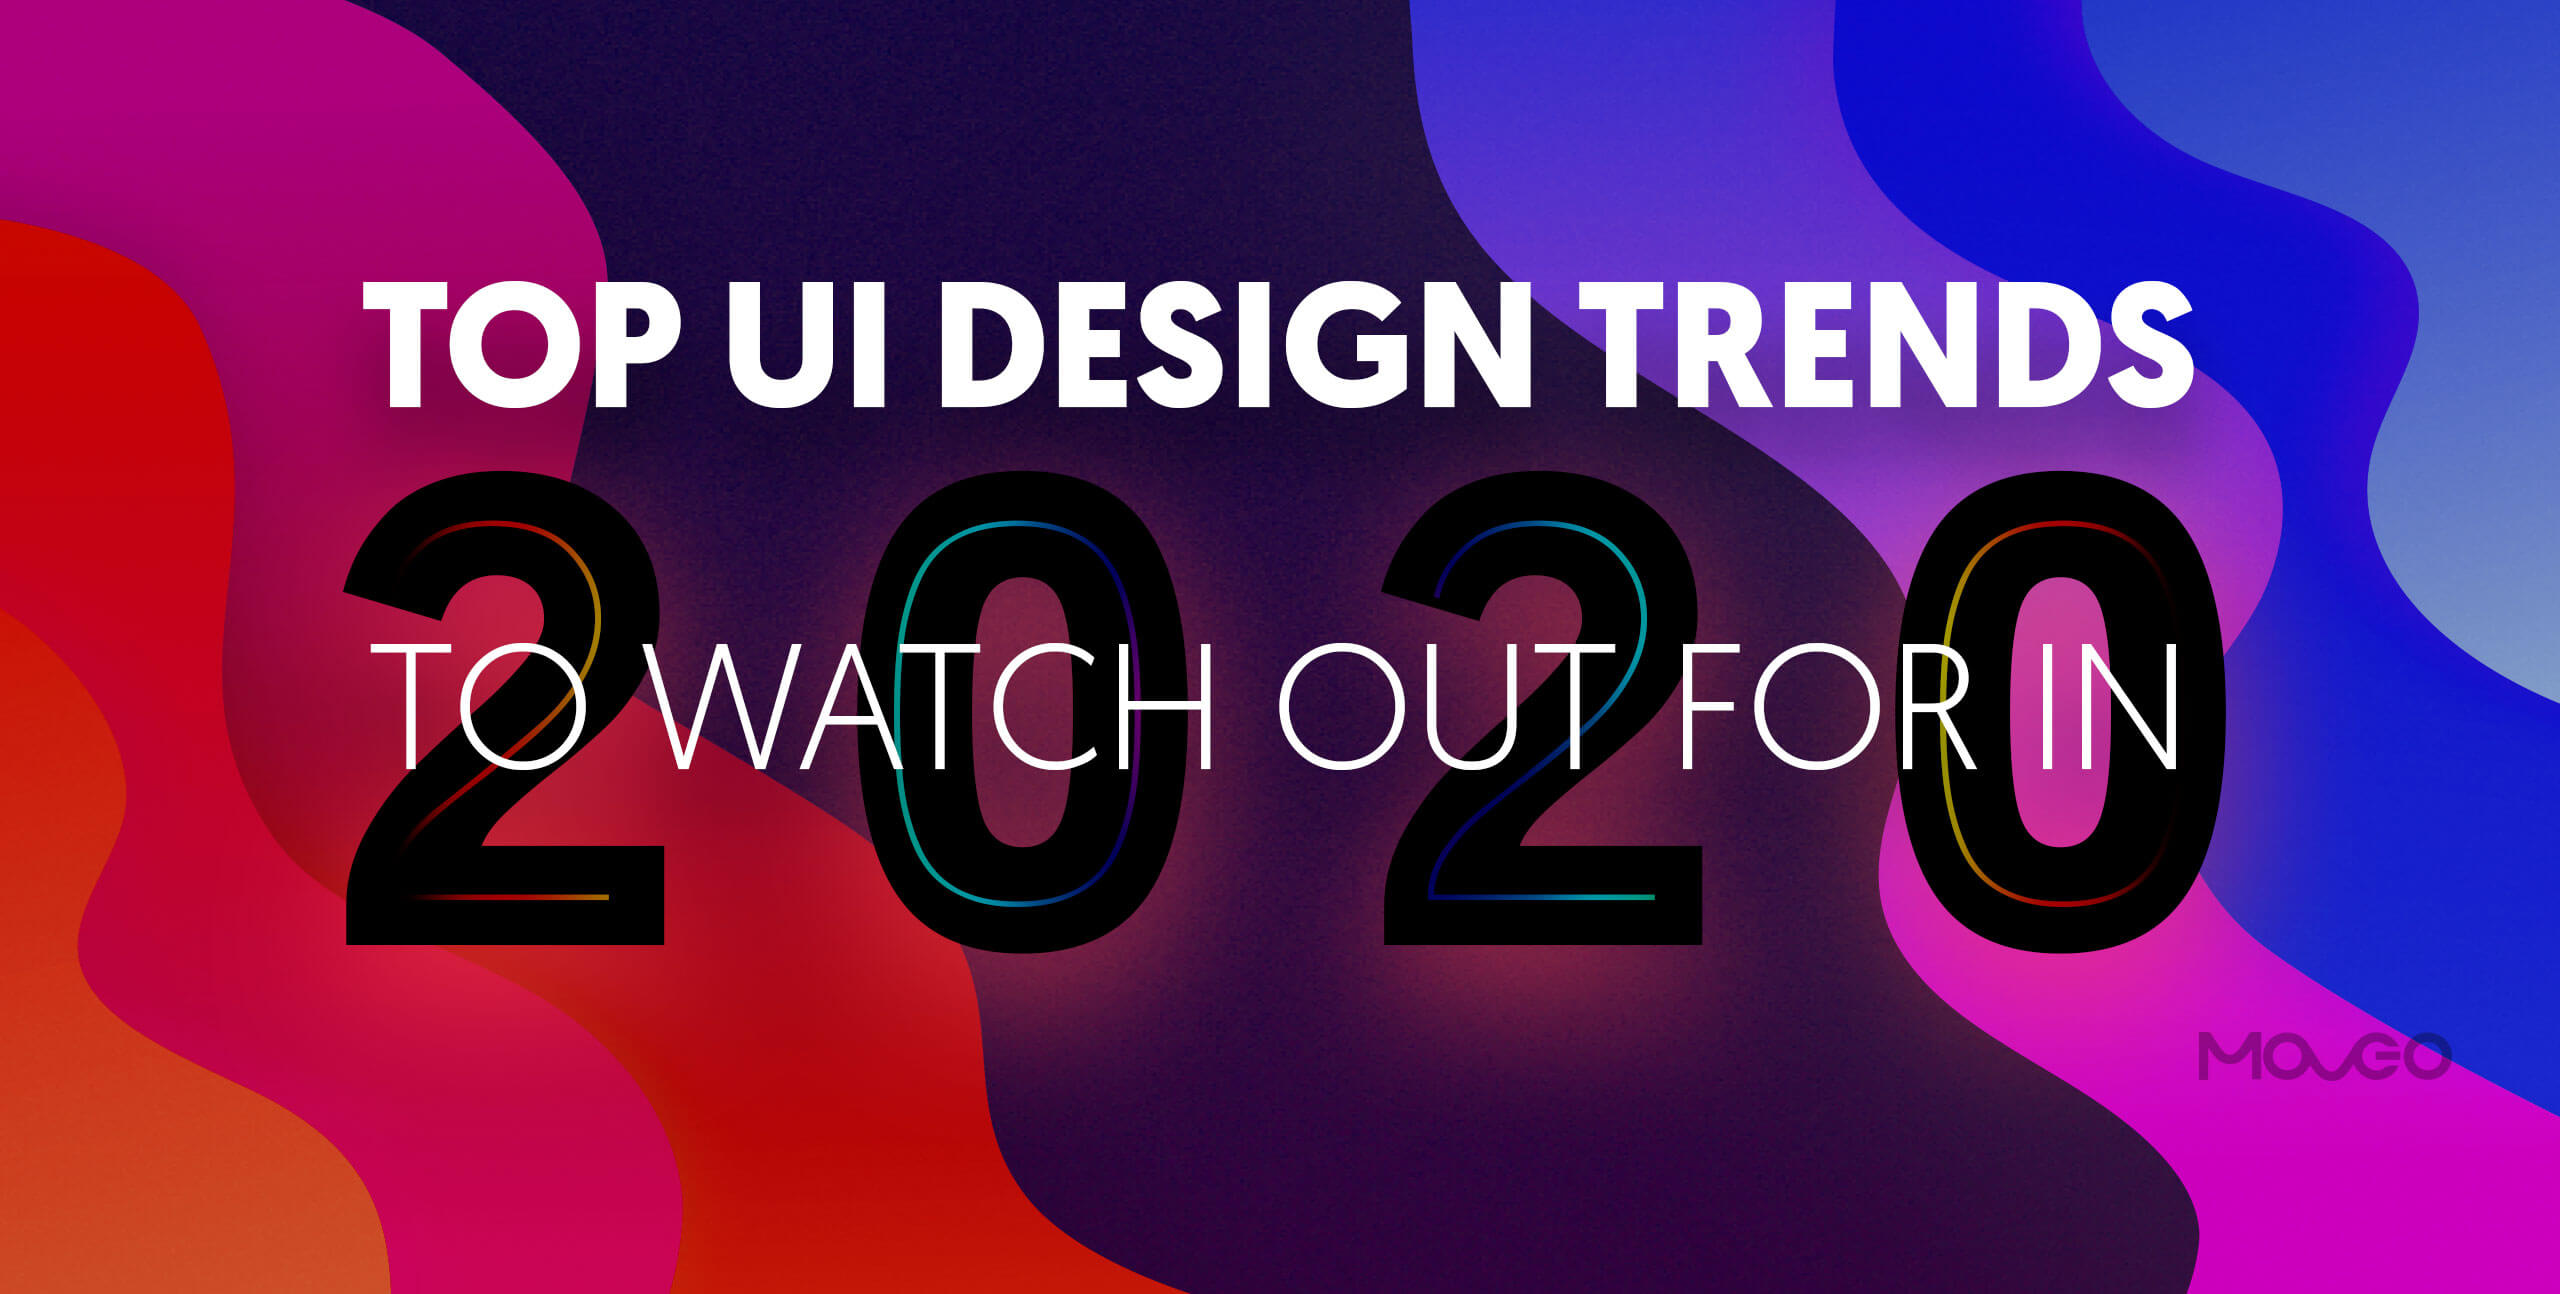 Top UI Design Trends to Watch Out For In 2020